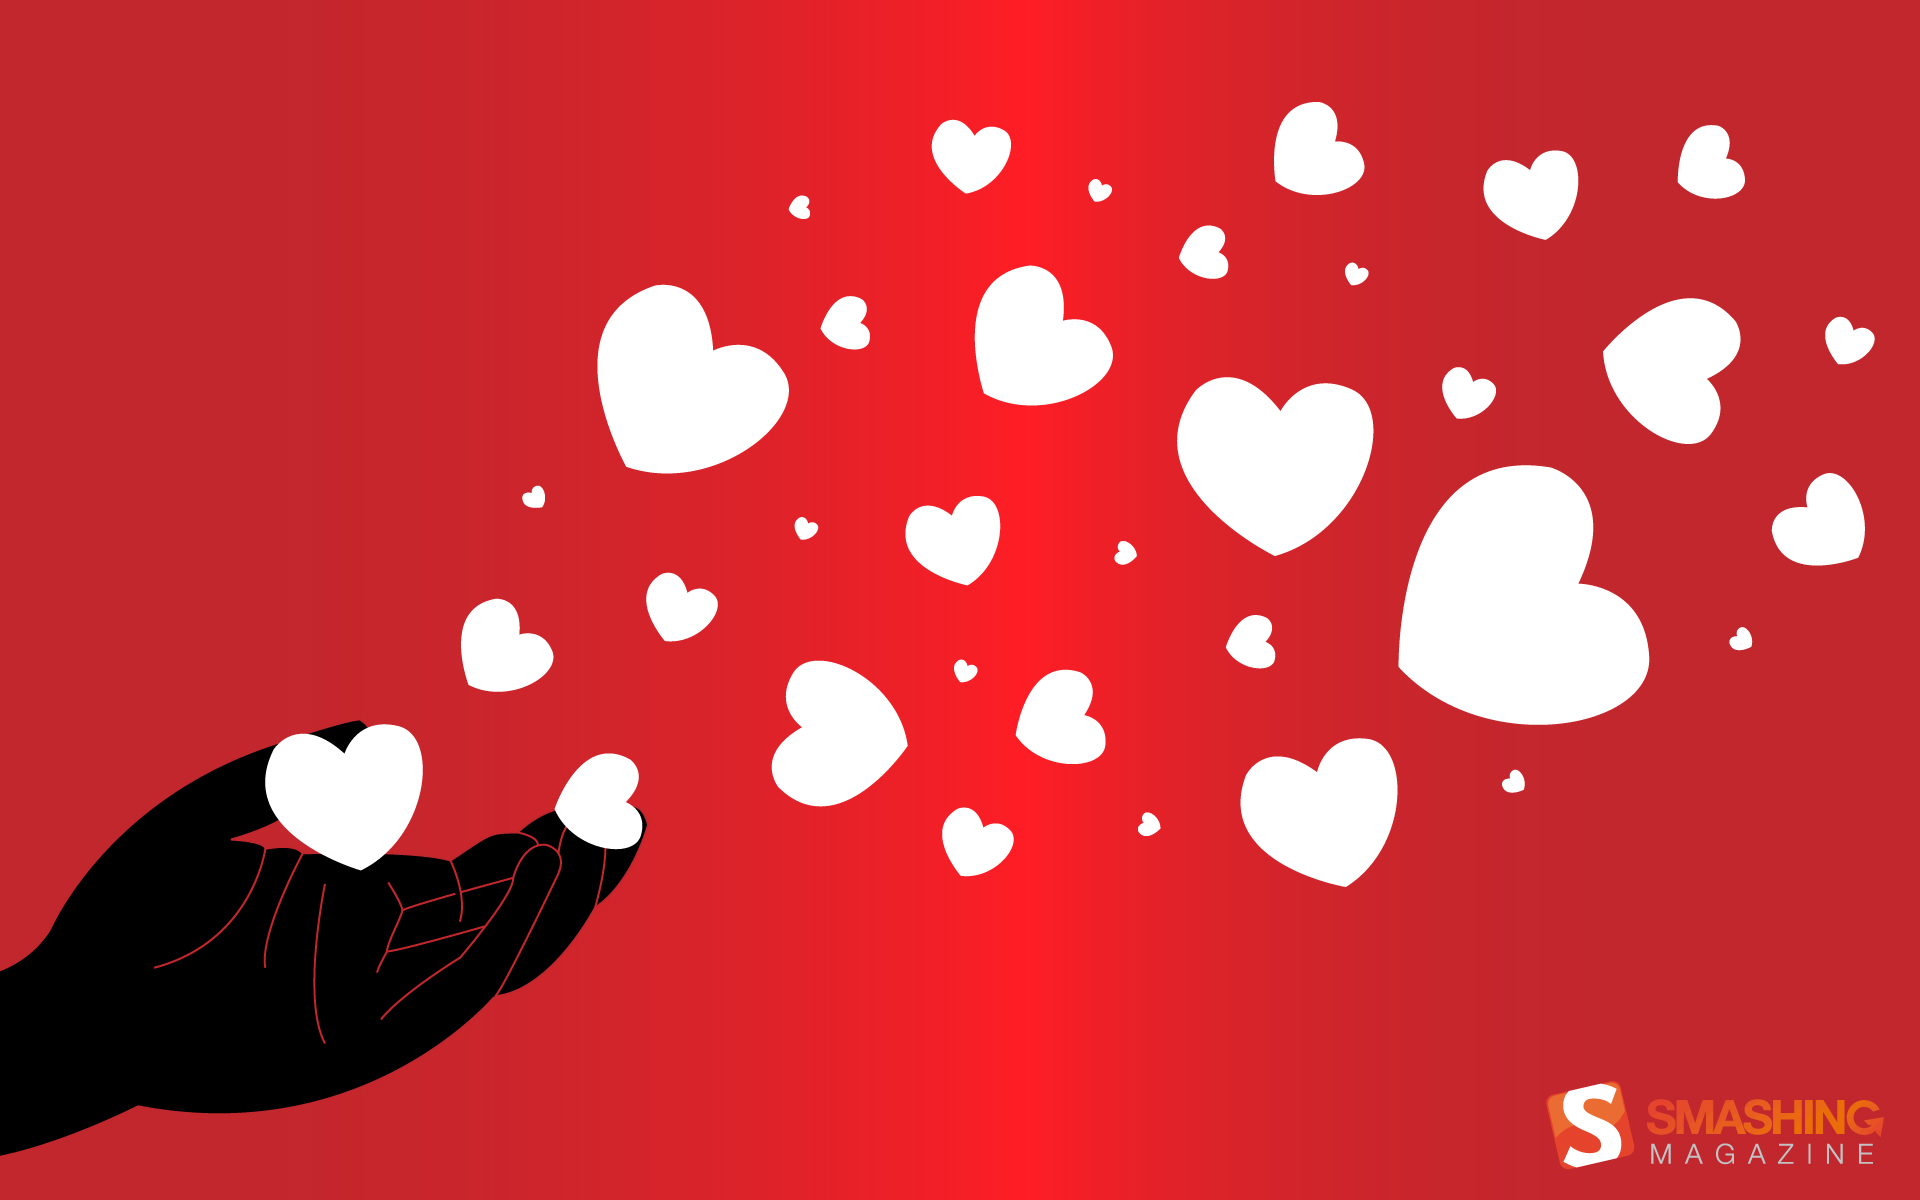 59 Valentines Day Wallpapers Love and Hearts Smashing Magazine 1920x1200